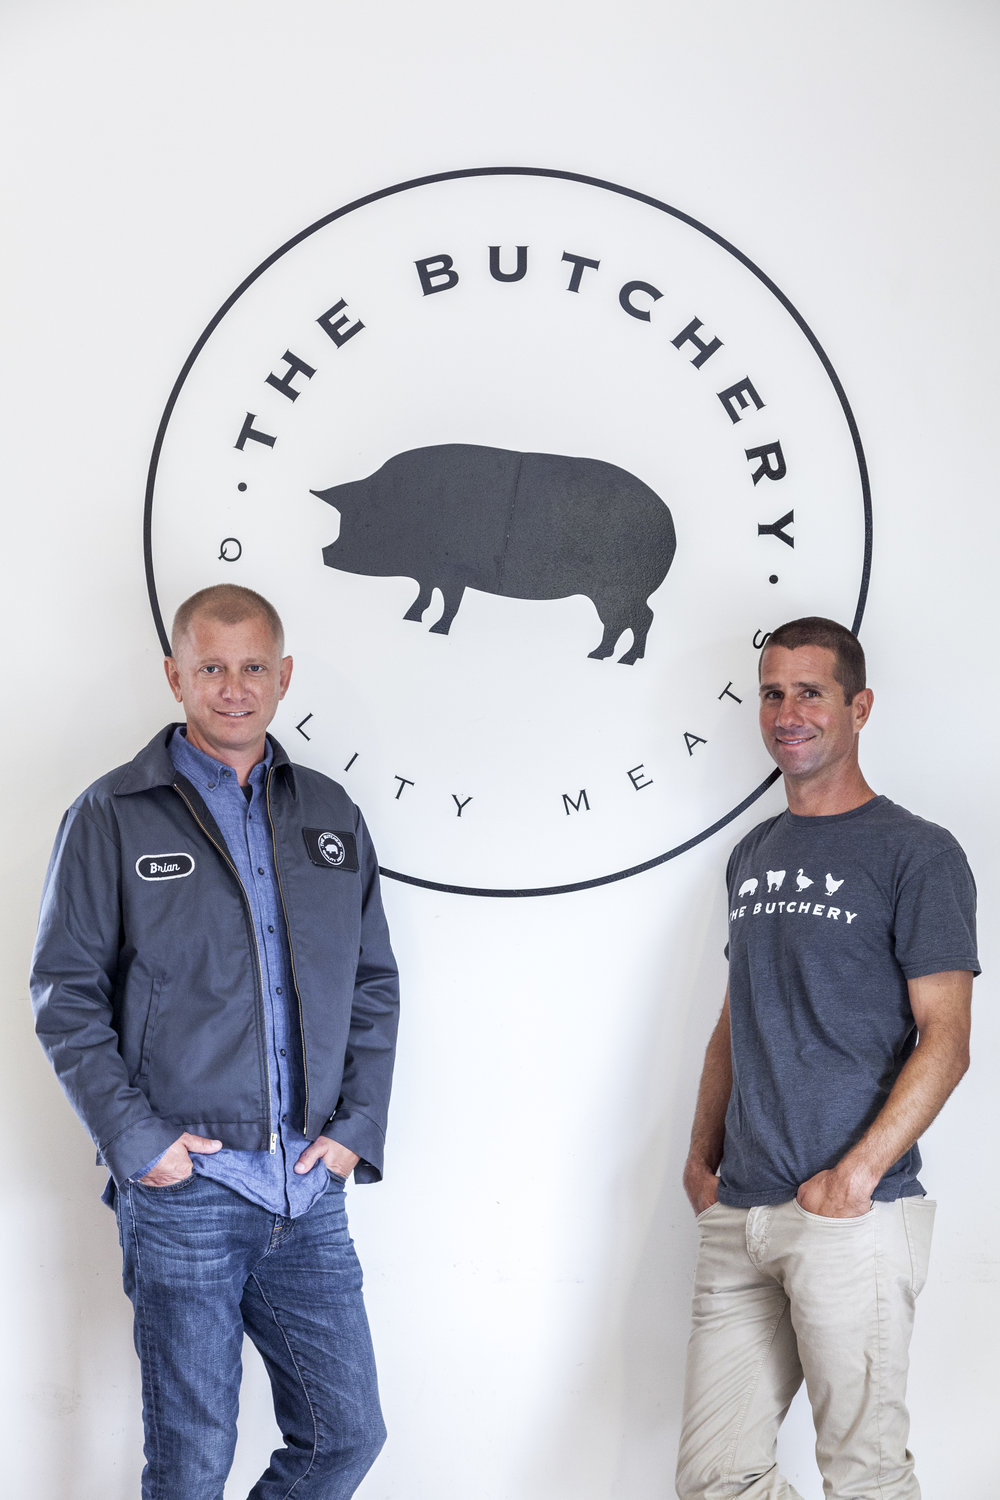 Brian Smith (L) and Robert Hagopian (R), owners of The Butchery. Photo courtesy of The Butchery